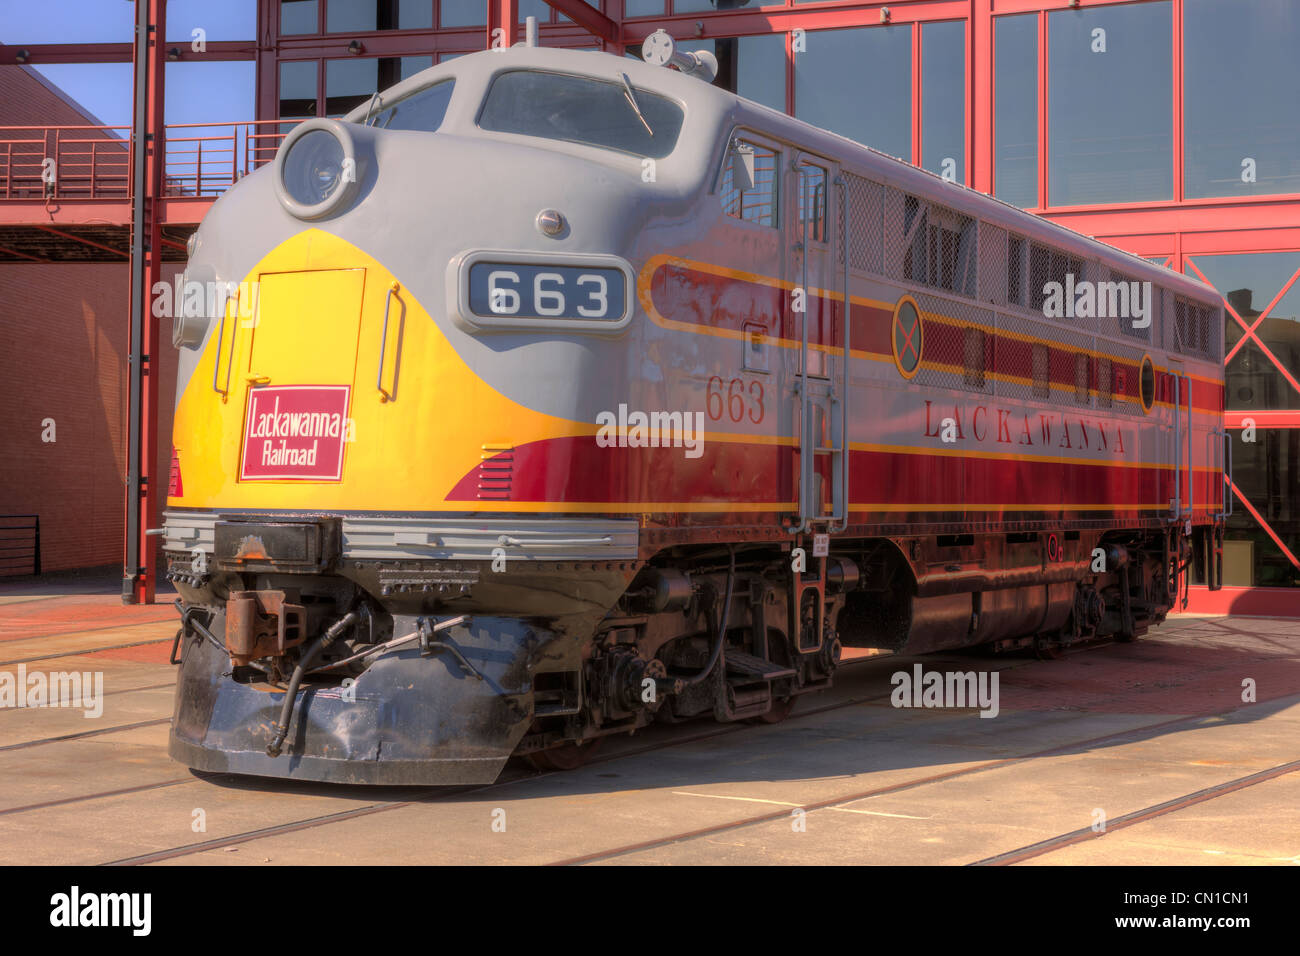 EMC F3 diesel locomotive in Lackawanna livery at the Steamtown National Historic Site in Scranton, Pennsylvania. - Stock Image